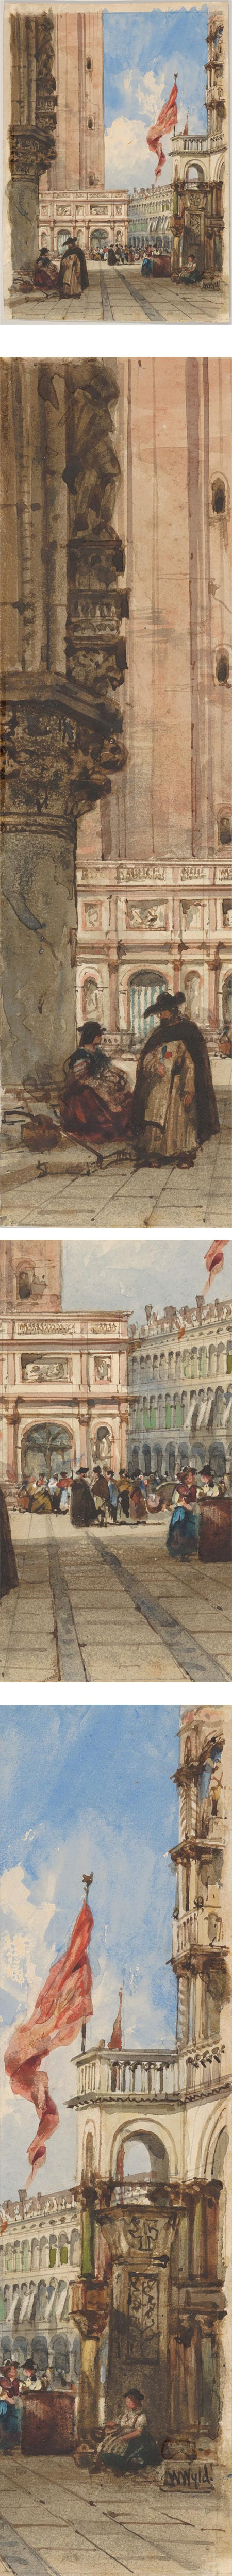 St. Mark's Square, Venice, with Loggetta, William Wyld, ink and watercolor